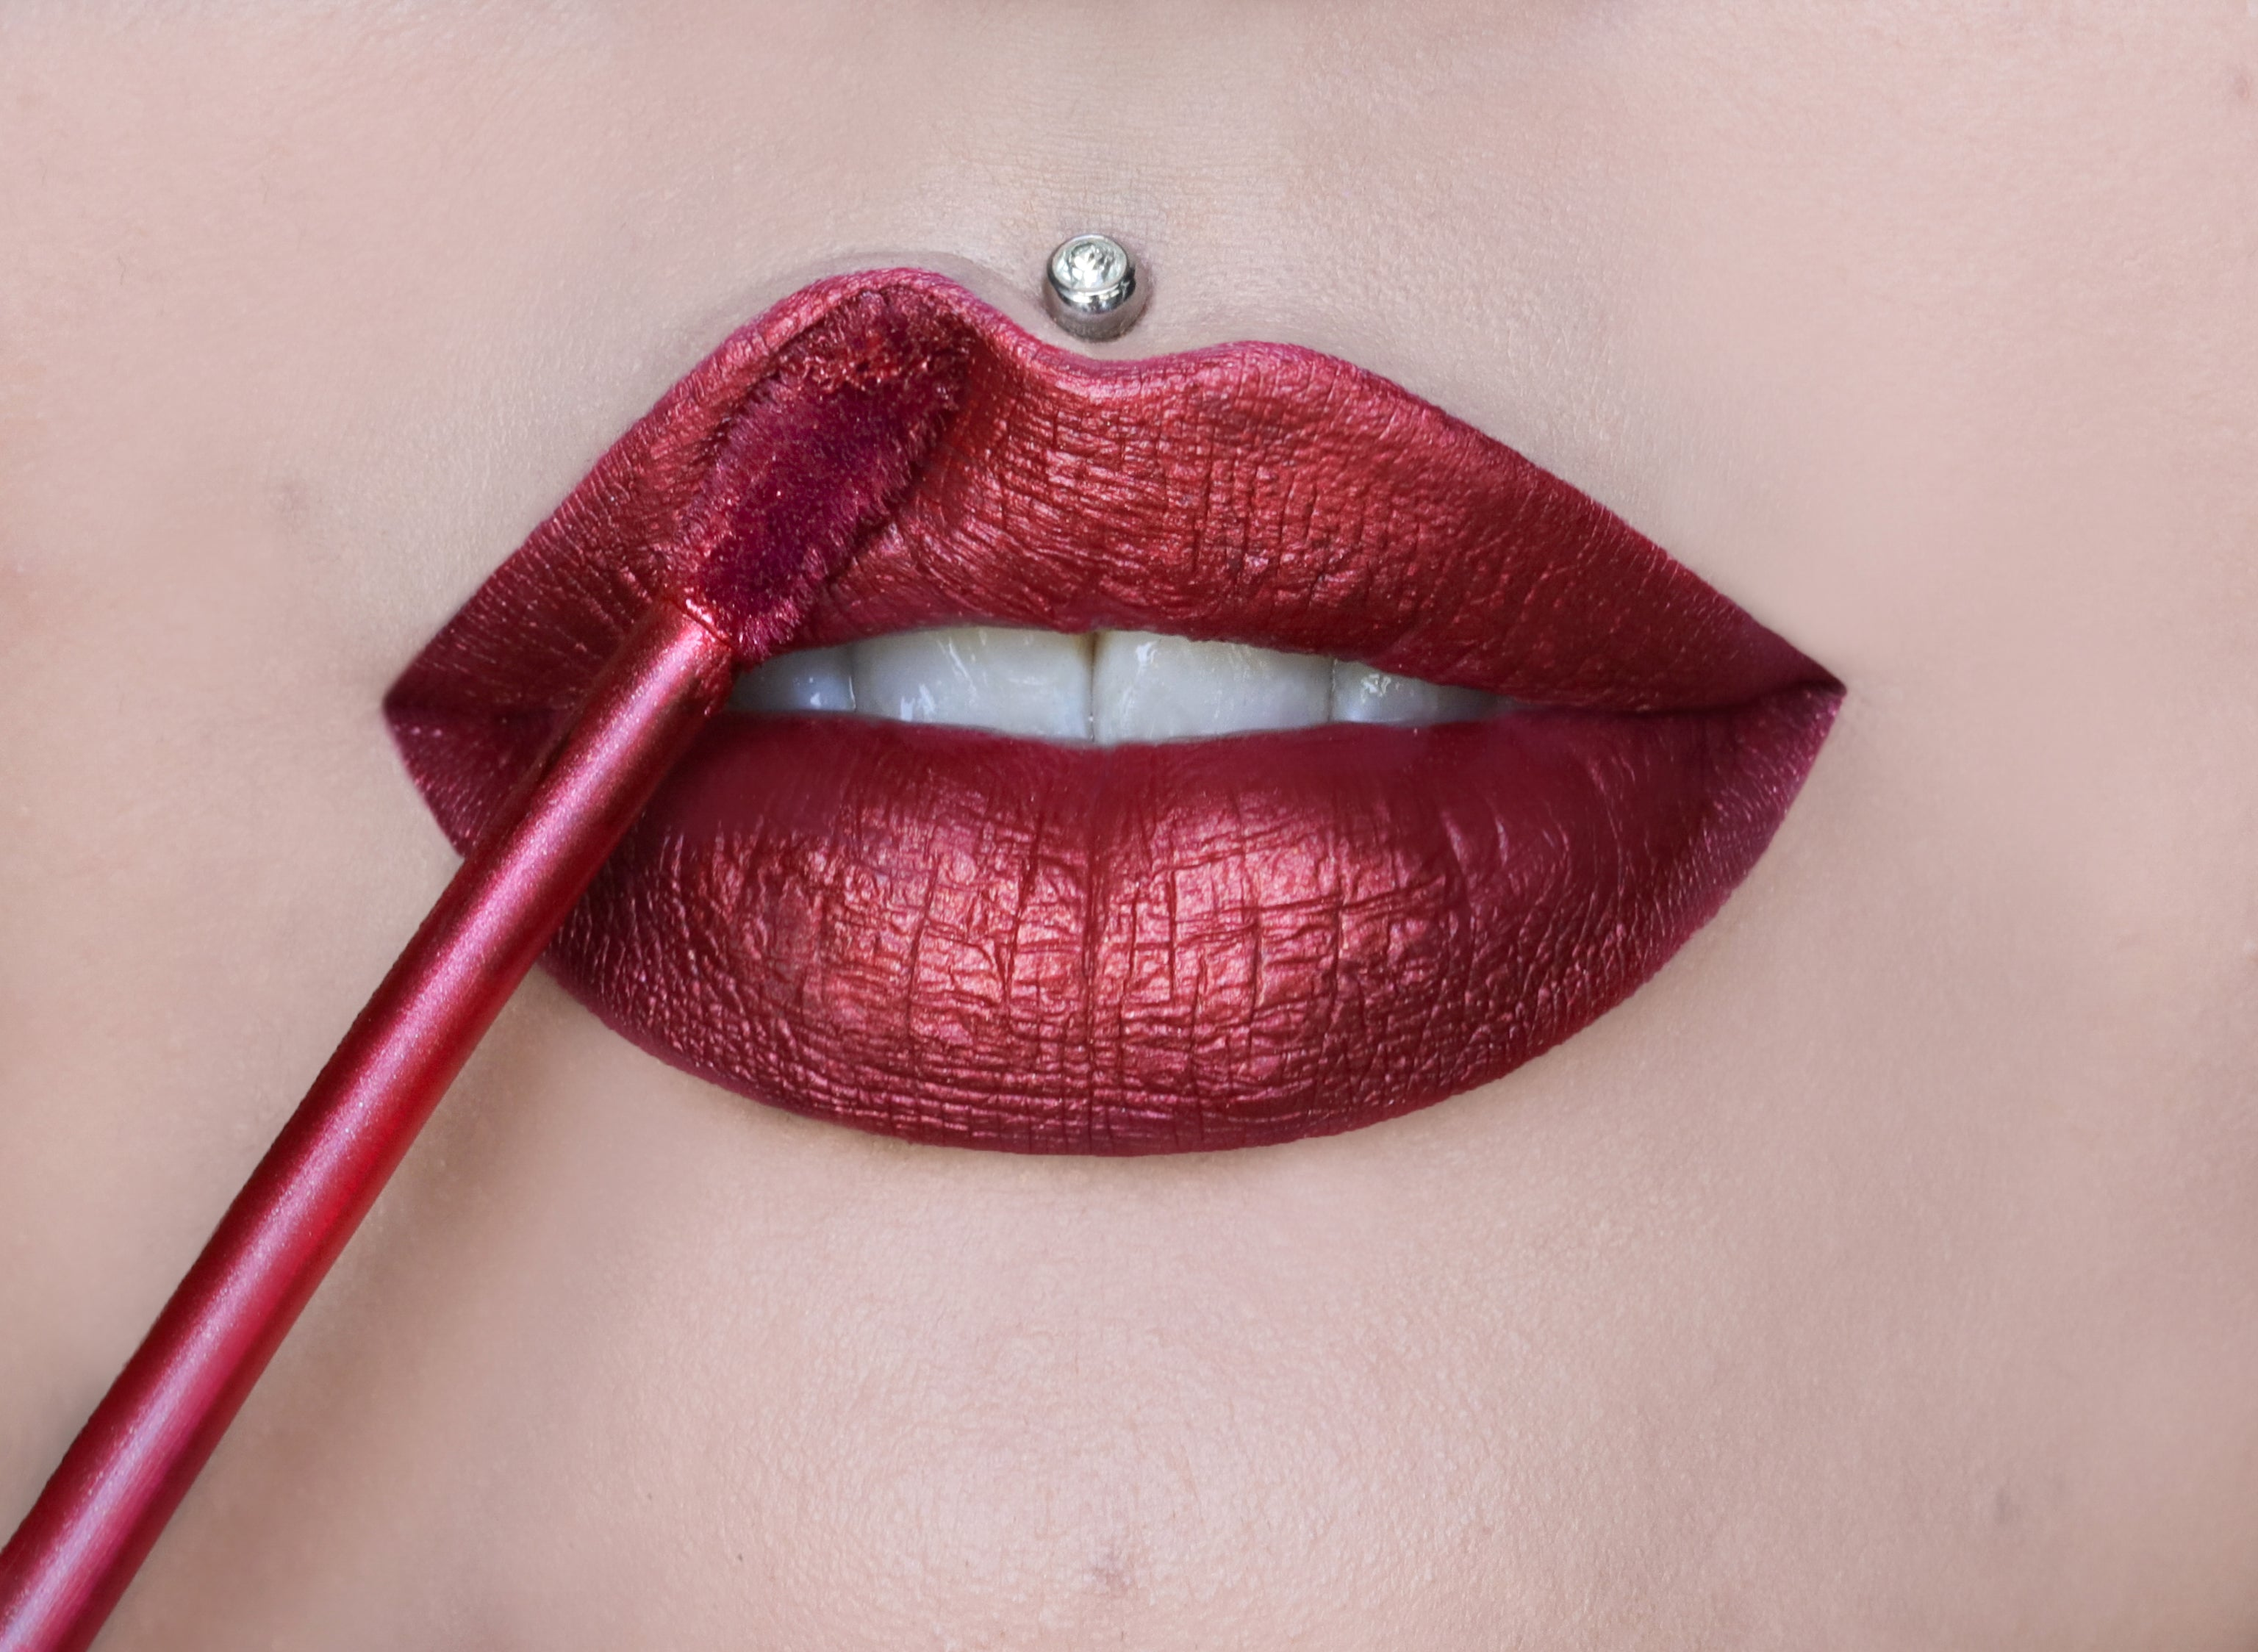 VELOUR LIQUID LIPSTICK - POINSETTIA ON MODEL, view larger image